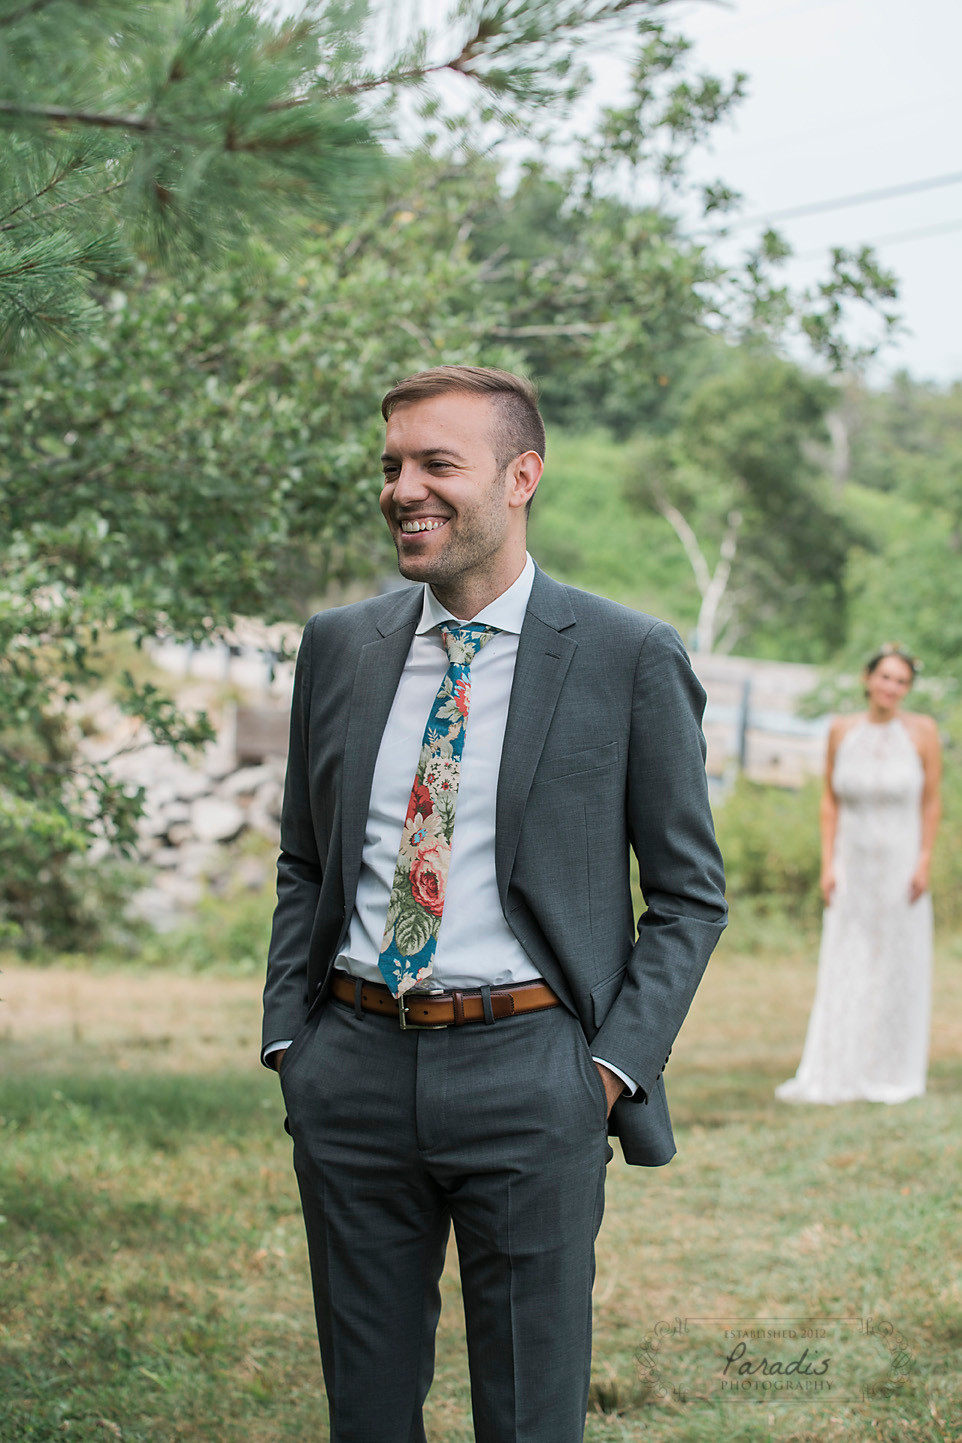 Groom's reaction to his bride coming down for their first look